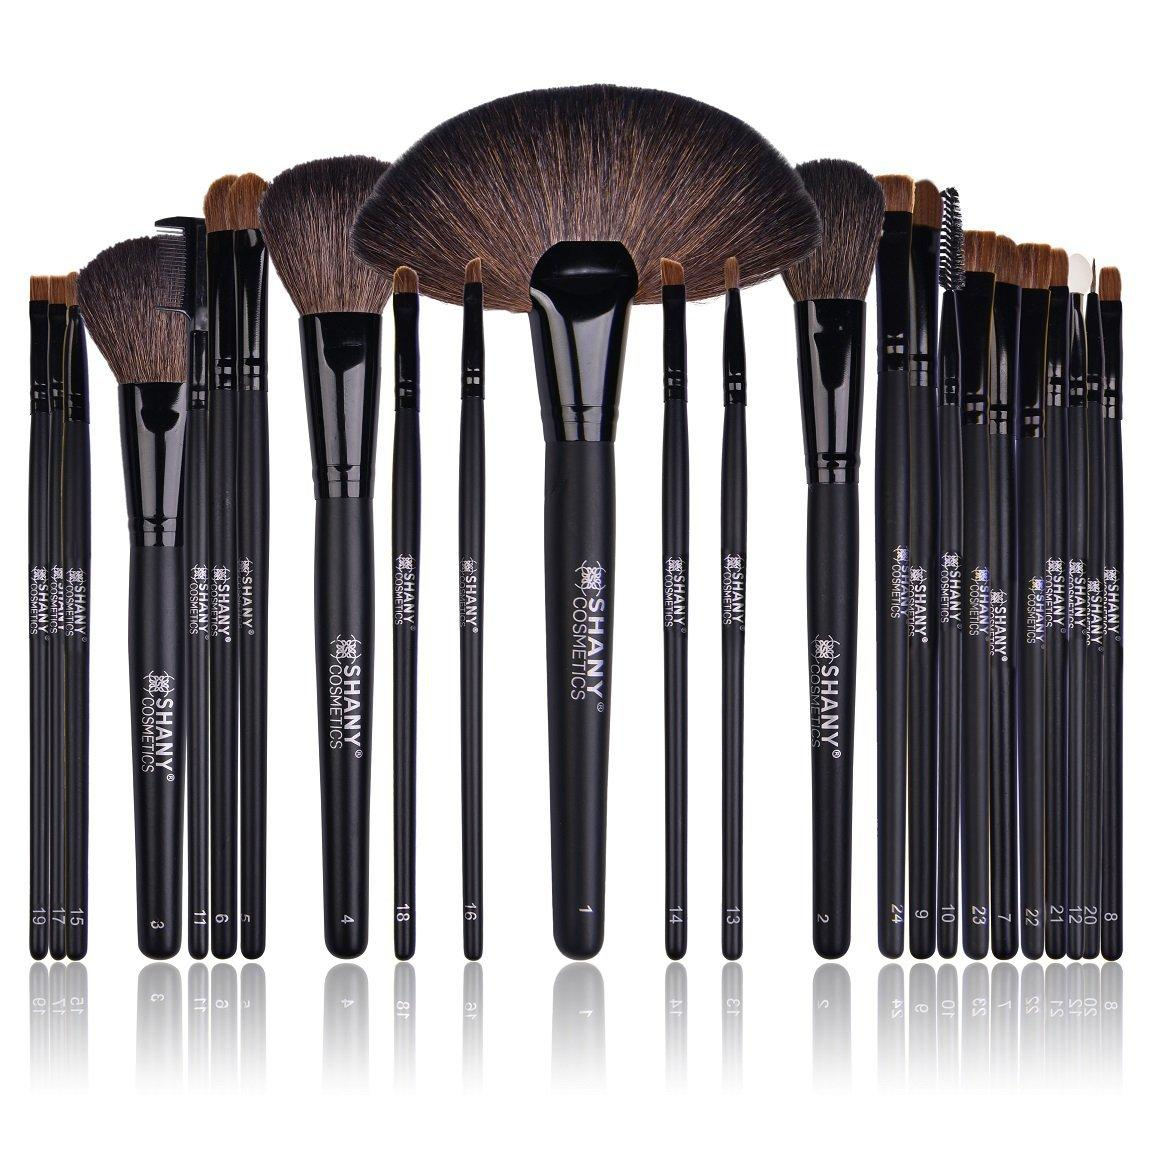 ... Brush Set with Leather Pouch, 24 Count : Makeup Brush Sets : Beauty